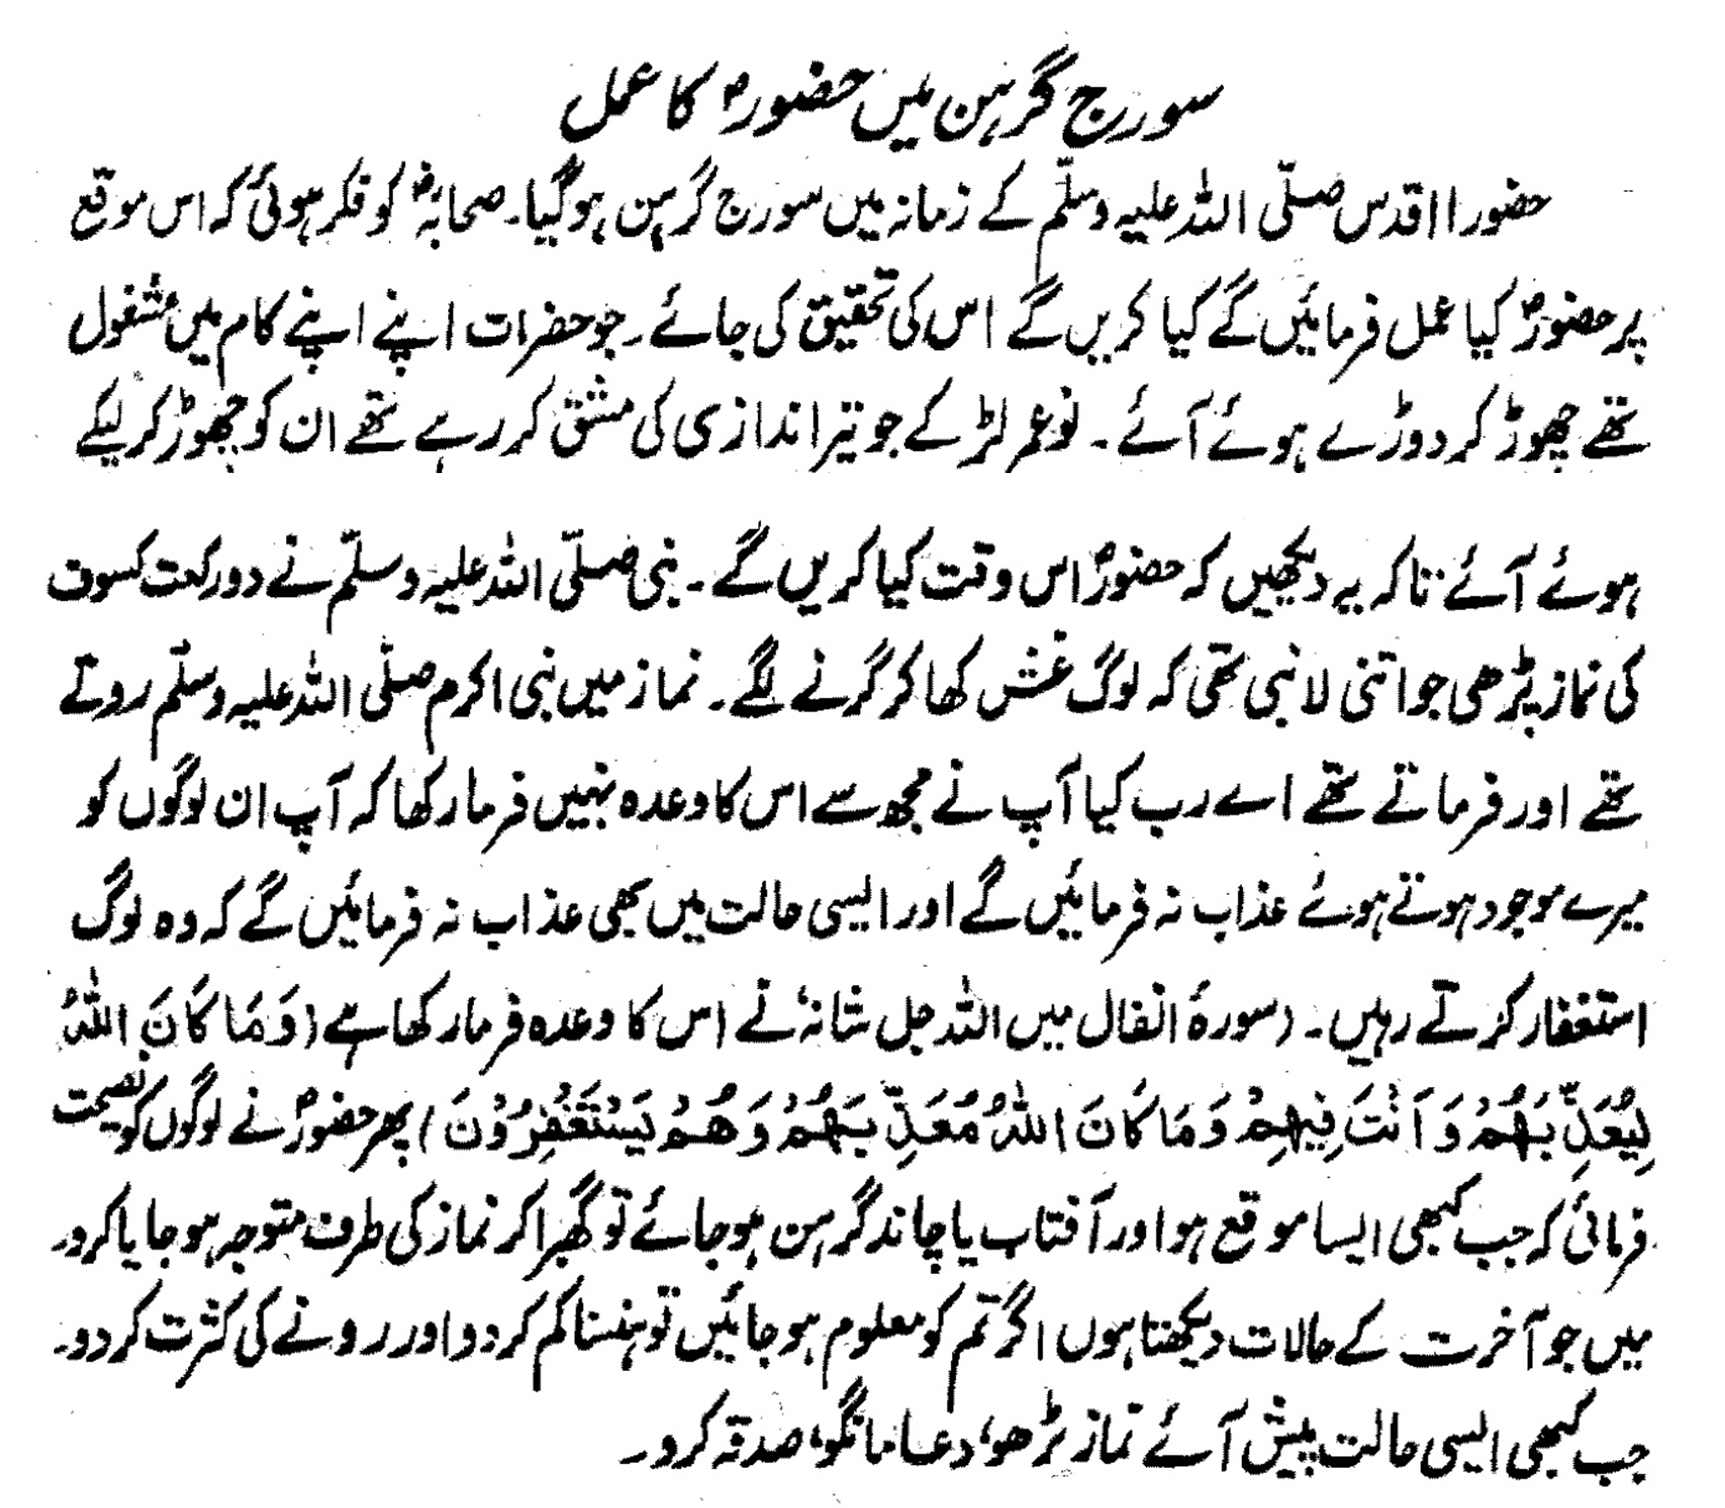 The action of Rasulullah's at the Time of Solar Eclipse